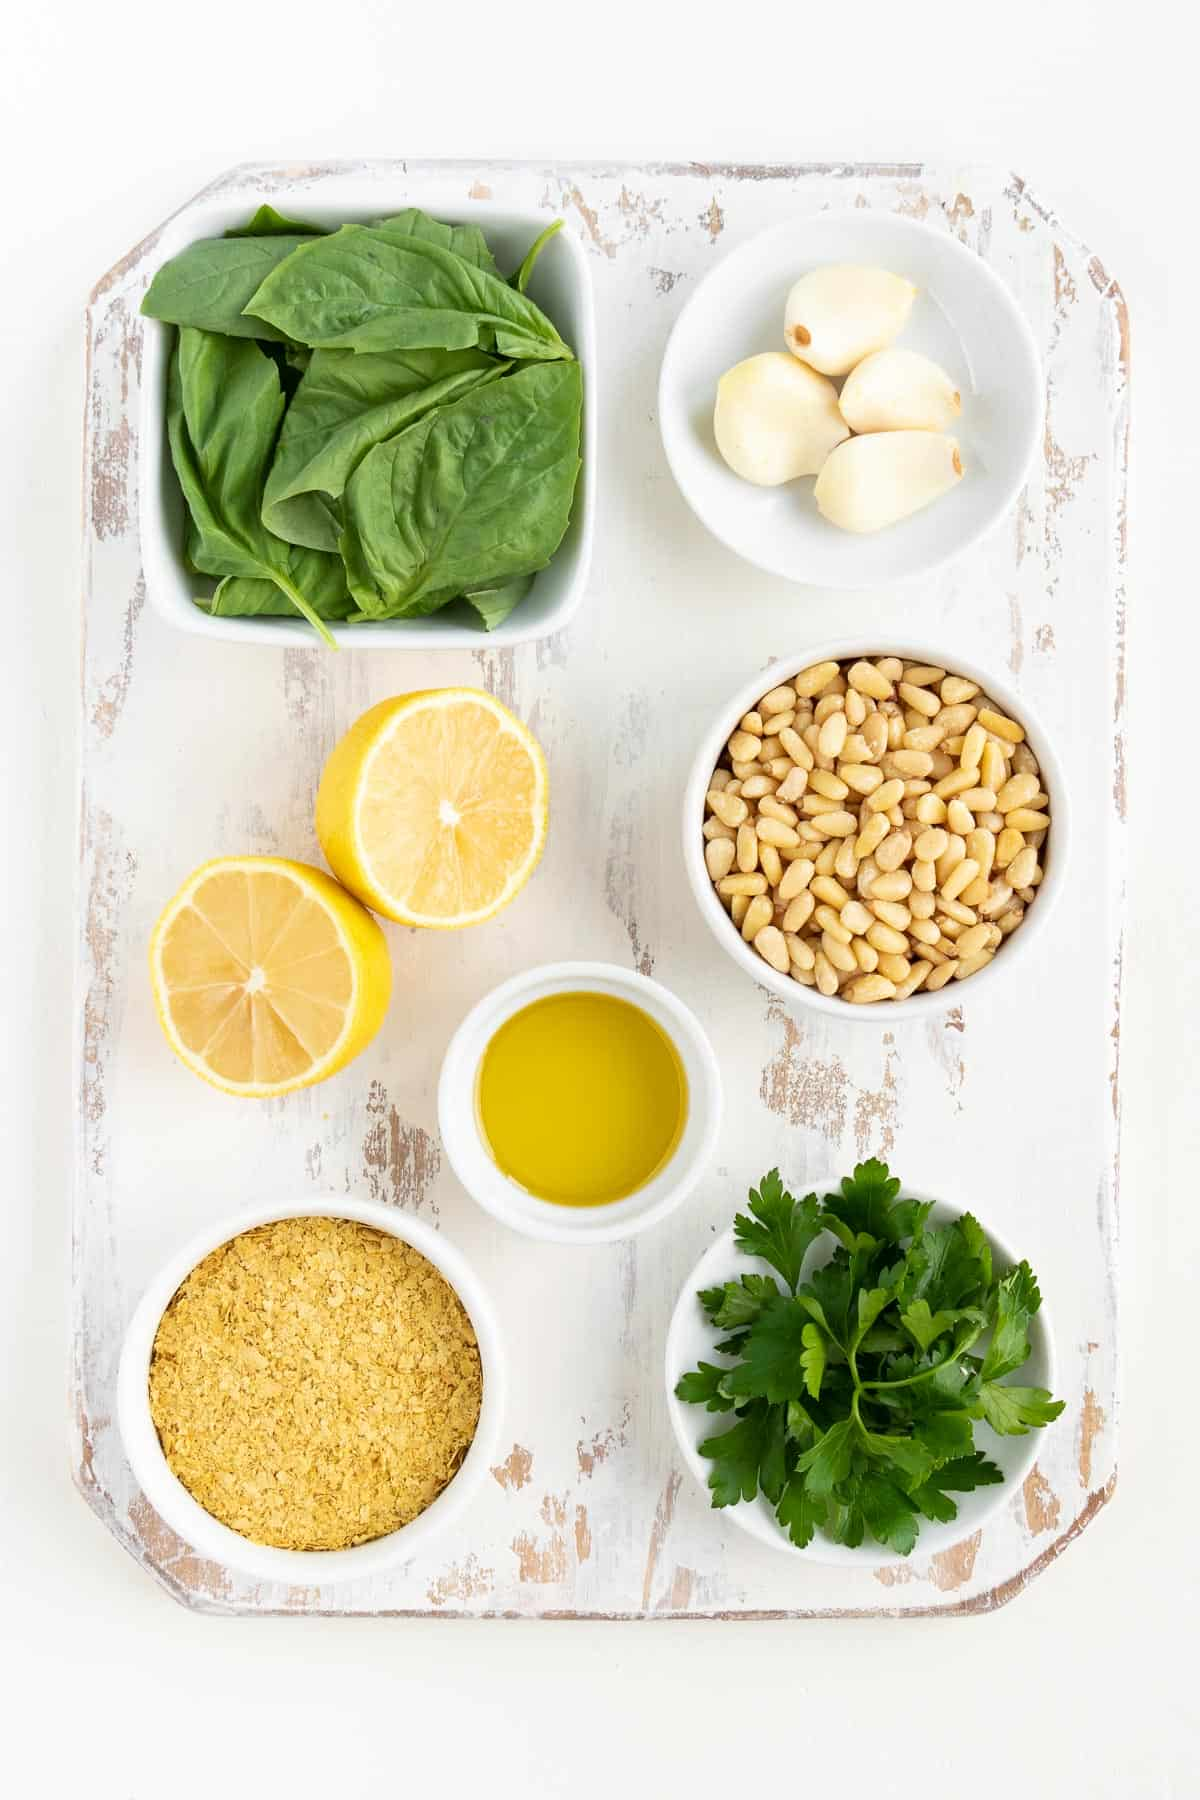 a distressed white wooden cutting board topped with small bowls of basil leaves, garlic cloves, pine nuts, lemon juice, olive oil, nutritional yeast, and parsley